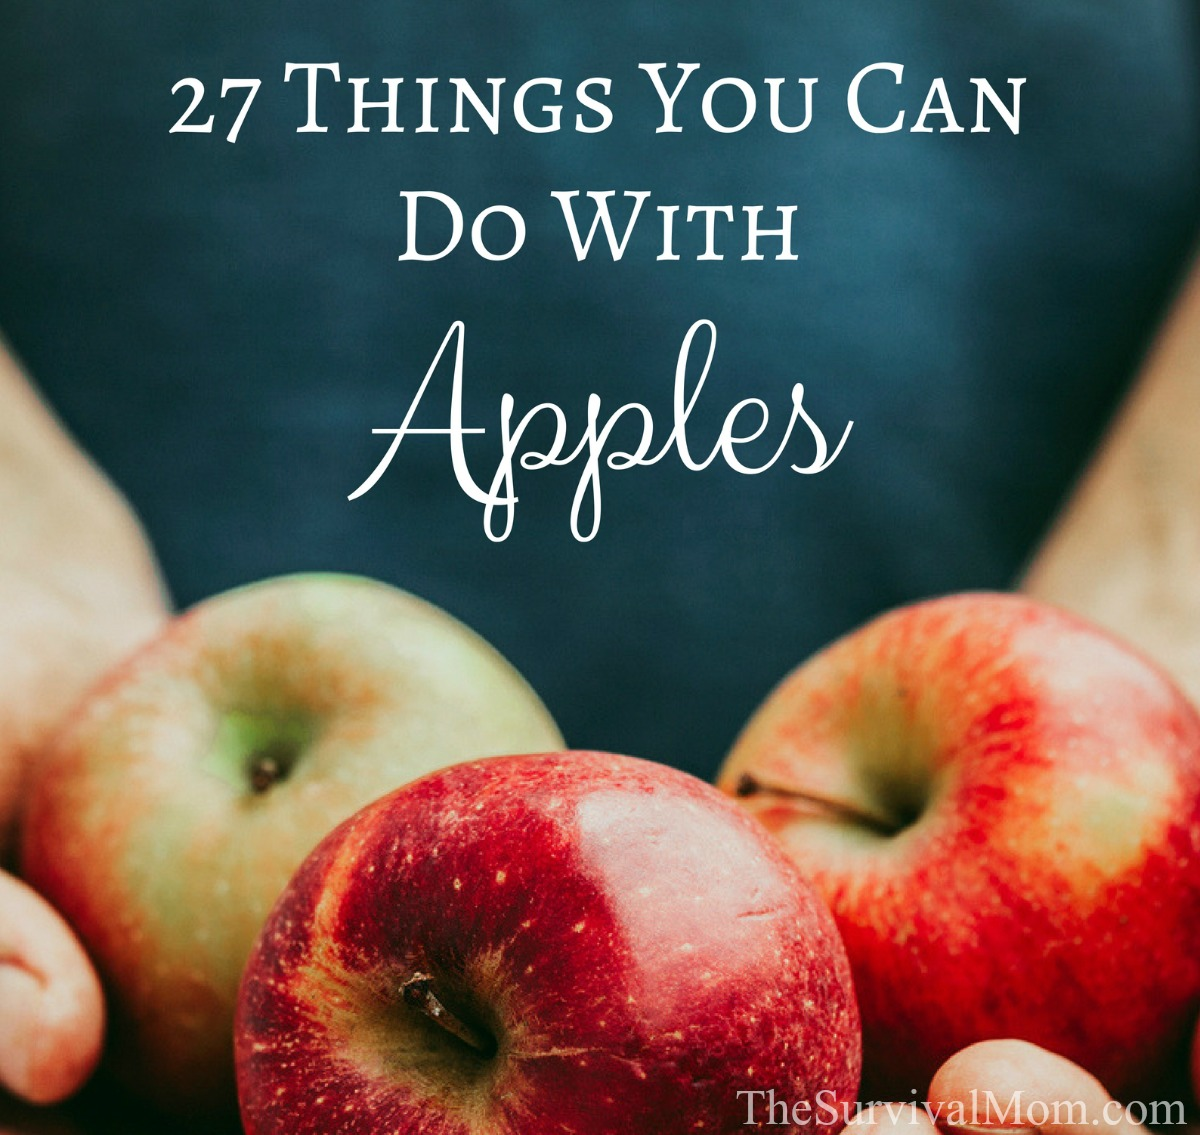 27 Things You Can Do With Apples